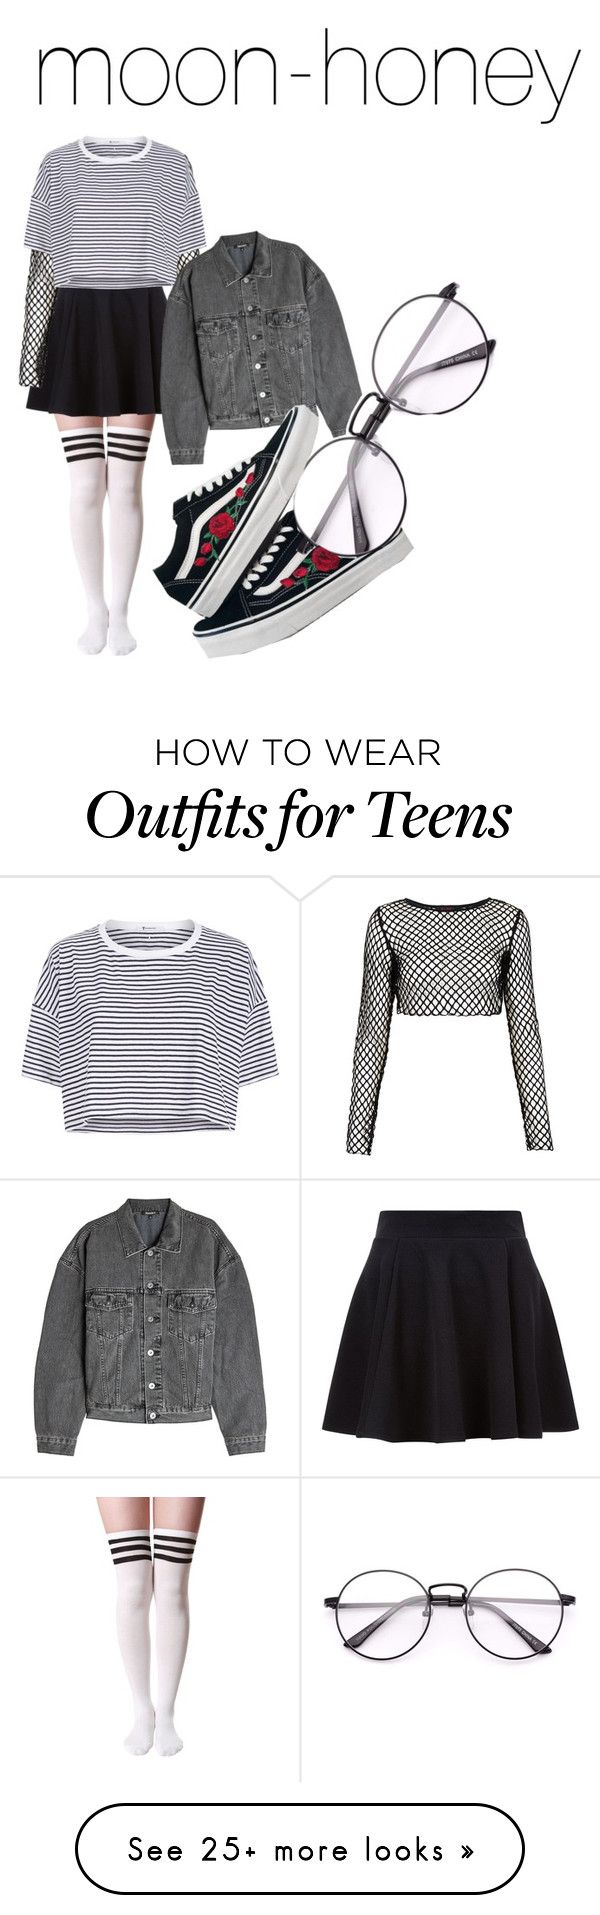 """Idk"" by moon-honey on Polyvore featuring Motel, T By Alexander Wang, Yeezy by Kanye West and Vans"